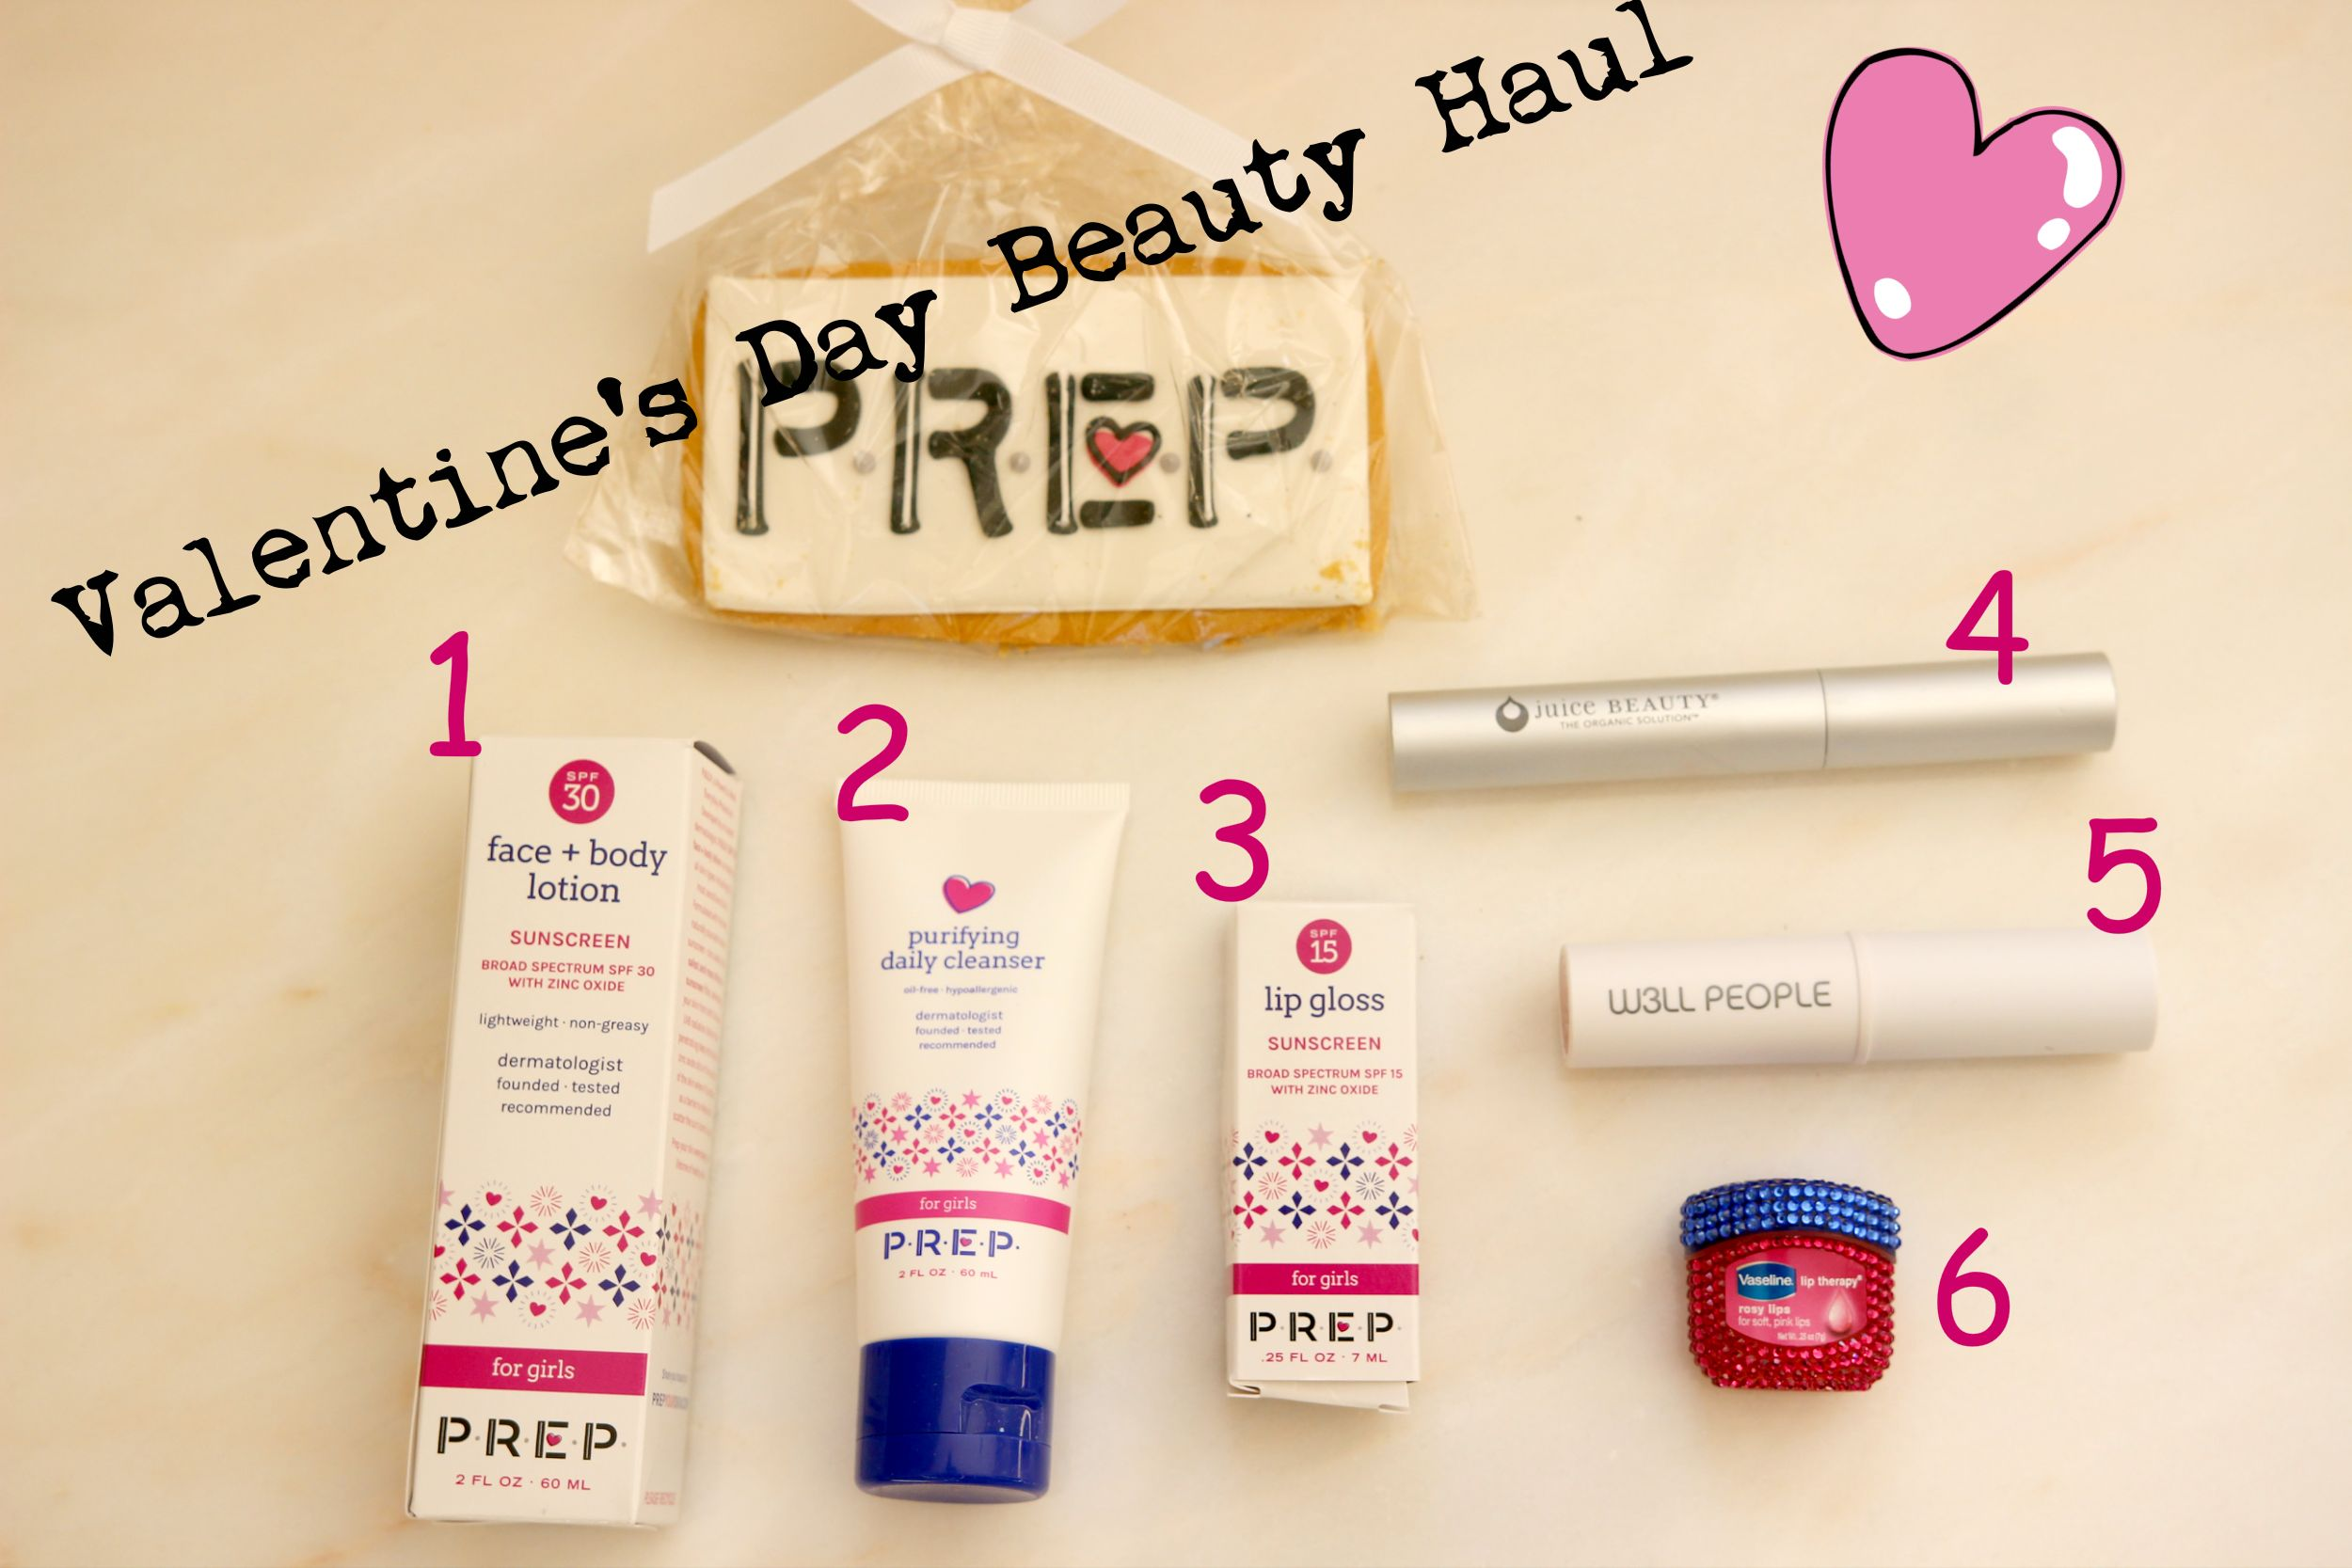 Valentine's Day Beauty Haul!